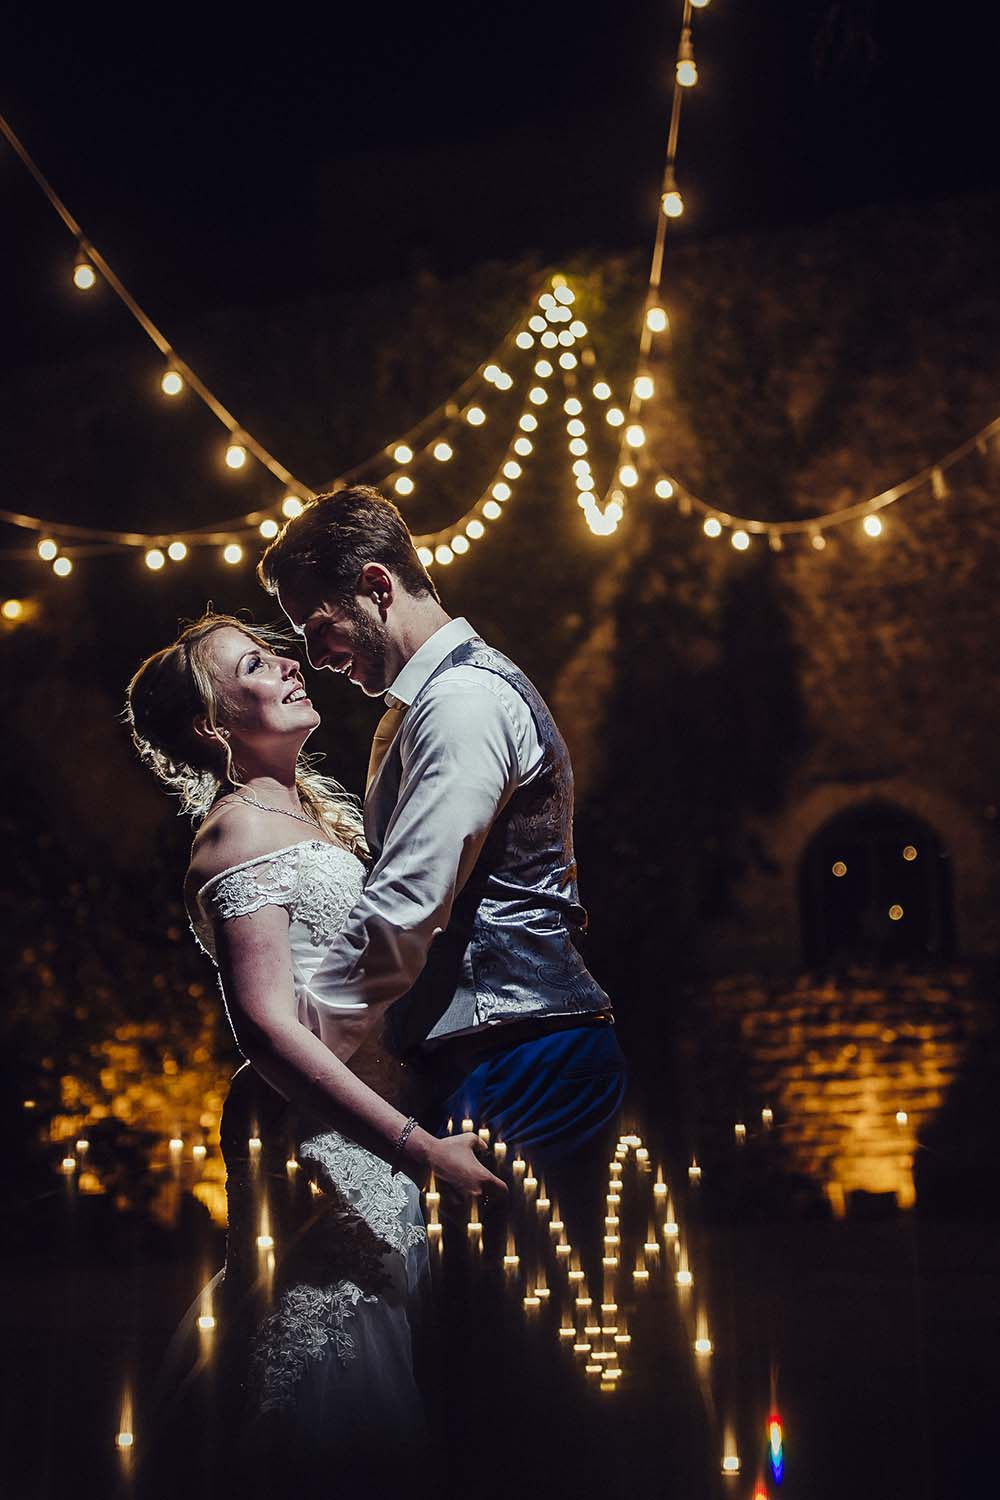 Wedding at Rosciano castle, Rellini art studio wedding photographers in Umbria